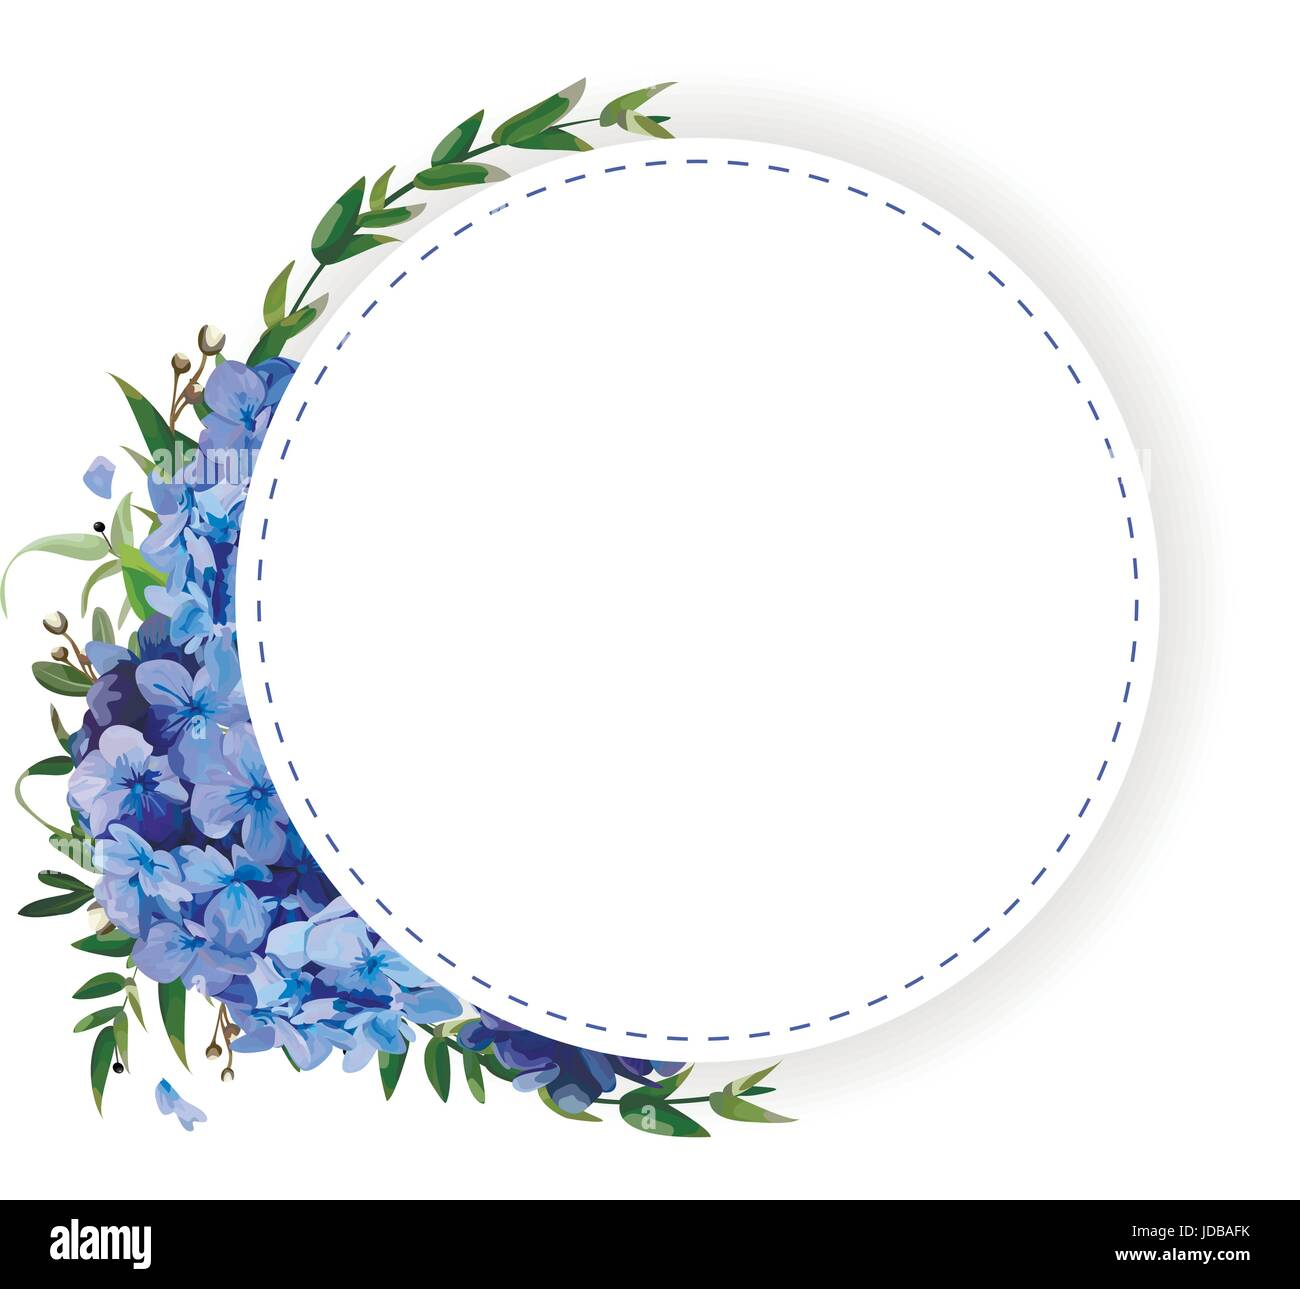 Flower circle, round, wreath coronet of blue hydrangea, hortensia flowers, green eucalyptus leaves beautiful lovely - Stock Vector